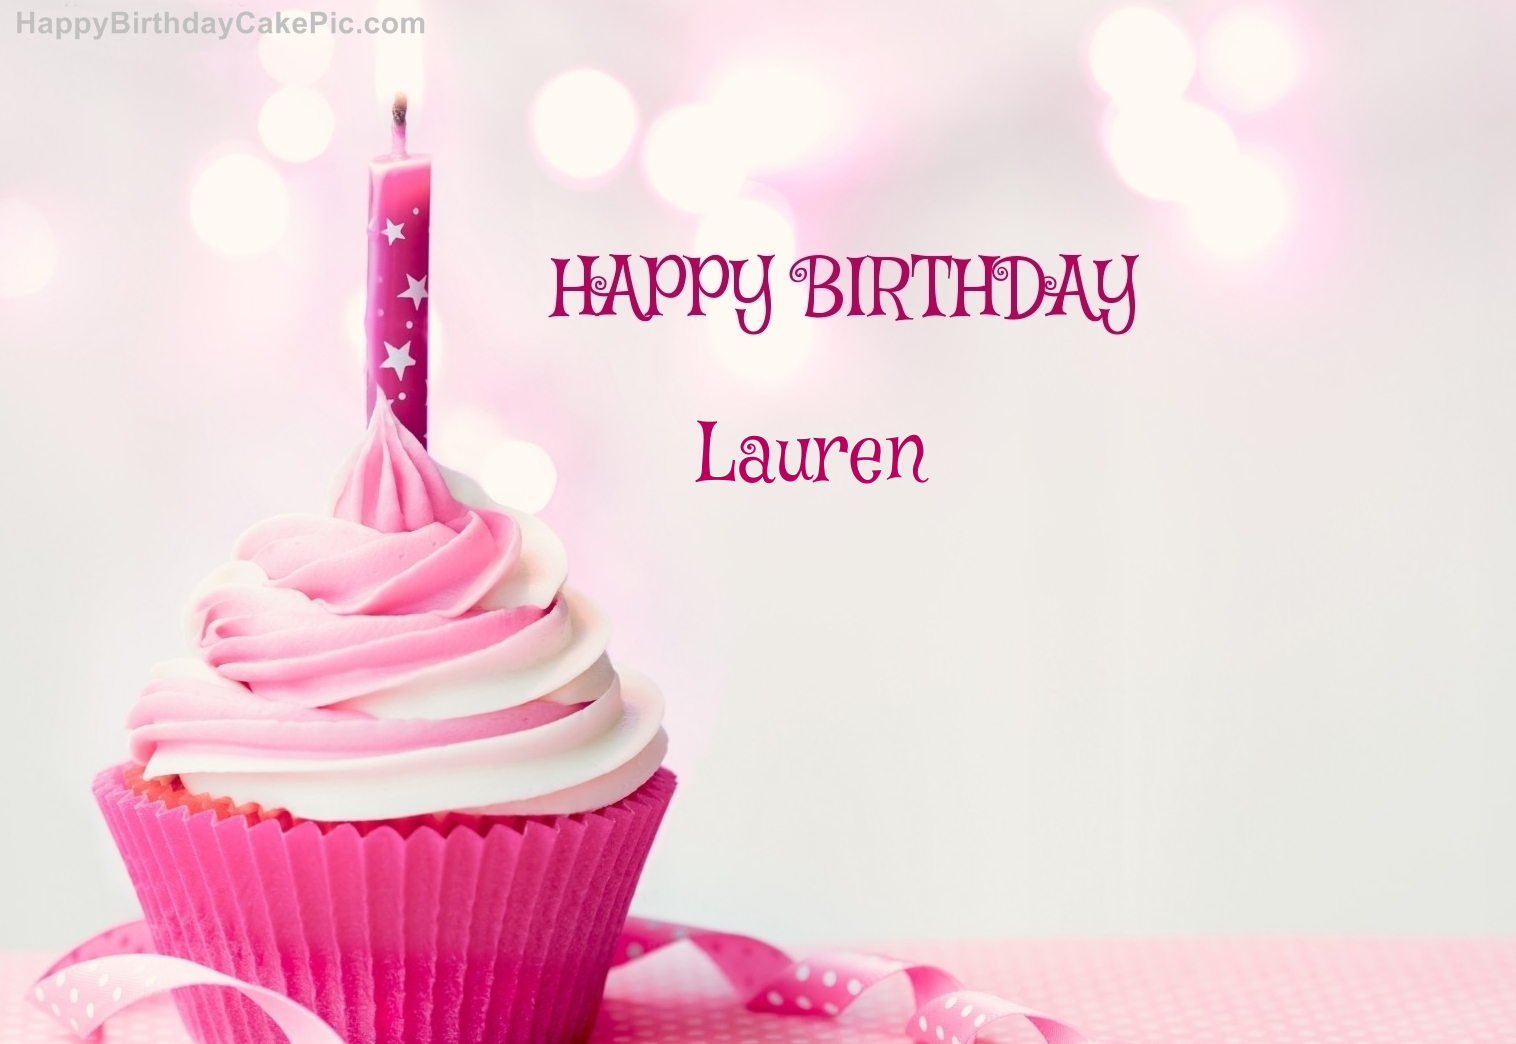 Happy Birthday Cupcake Candle Pink Cake For Lauren